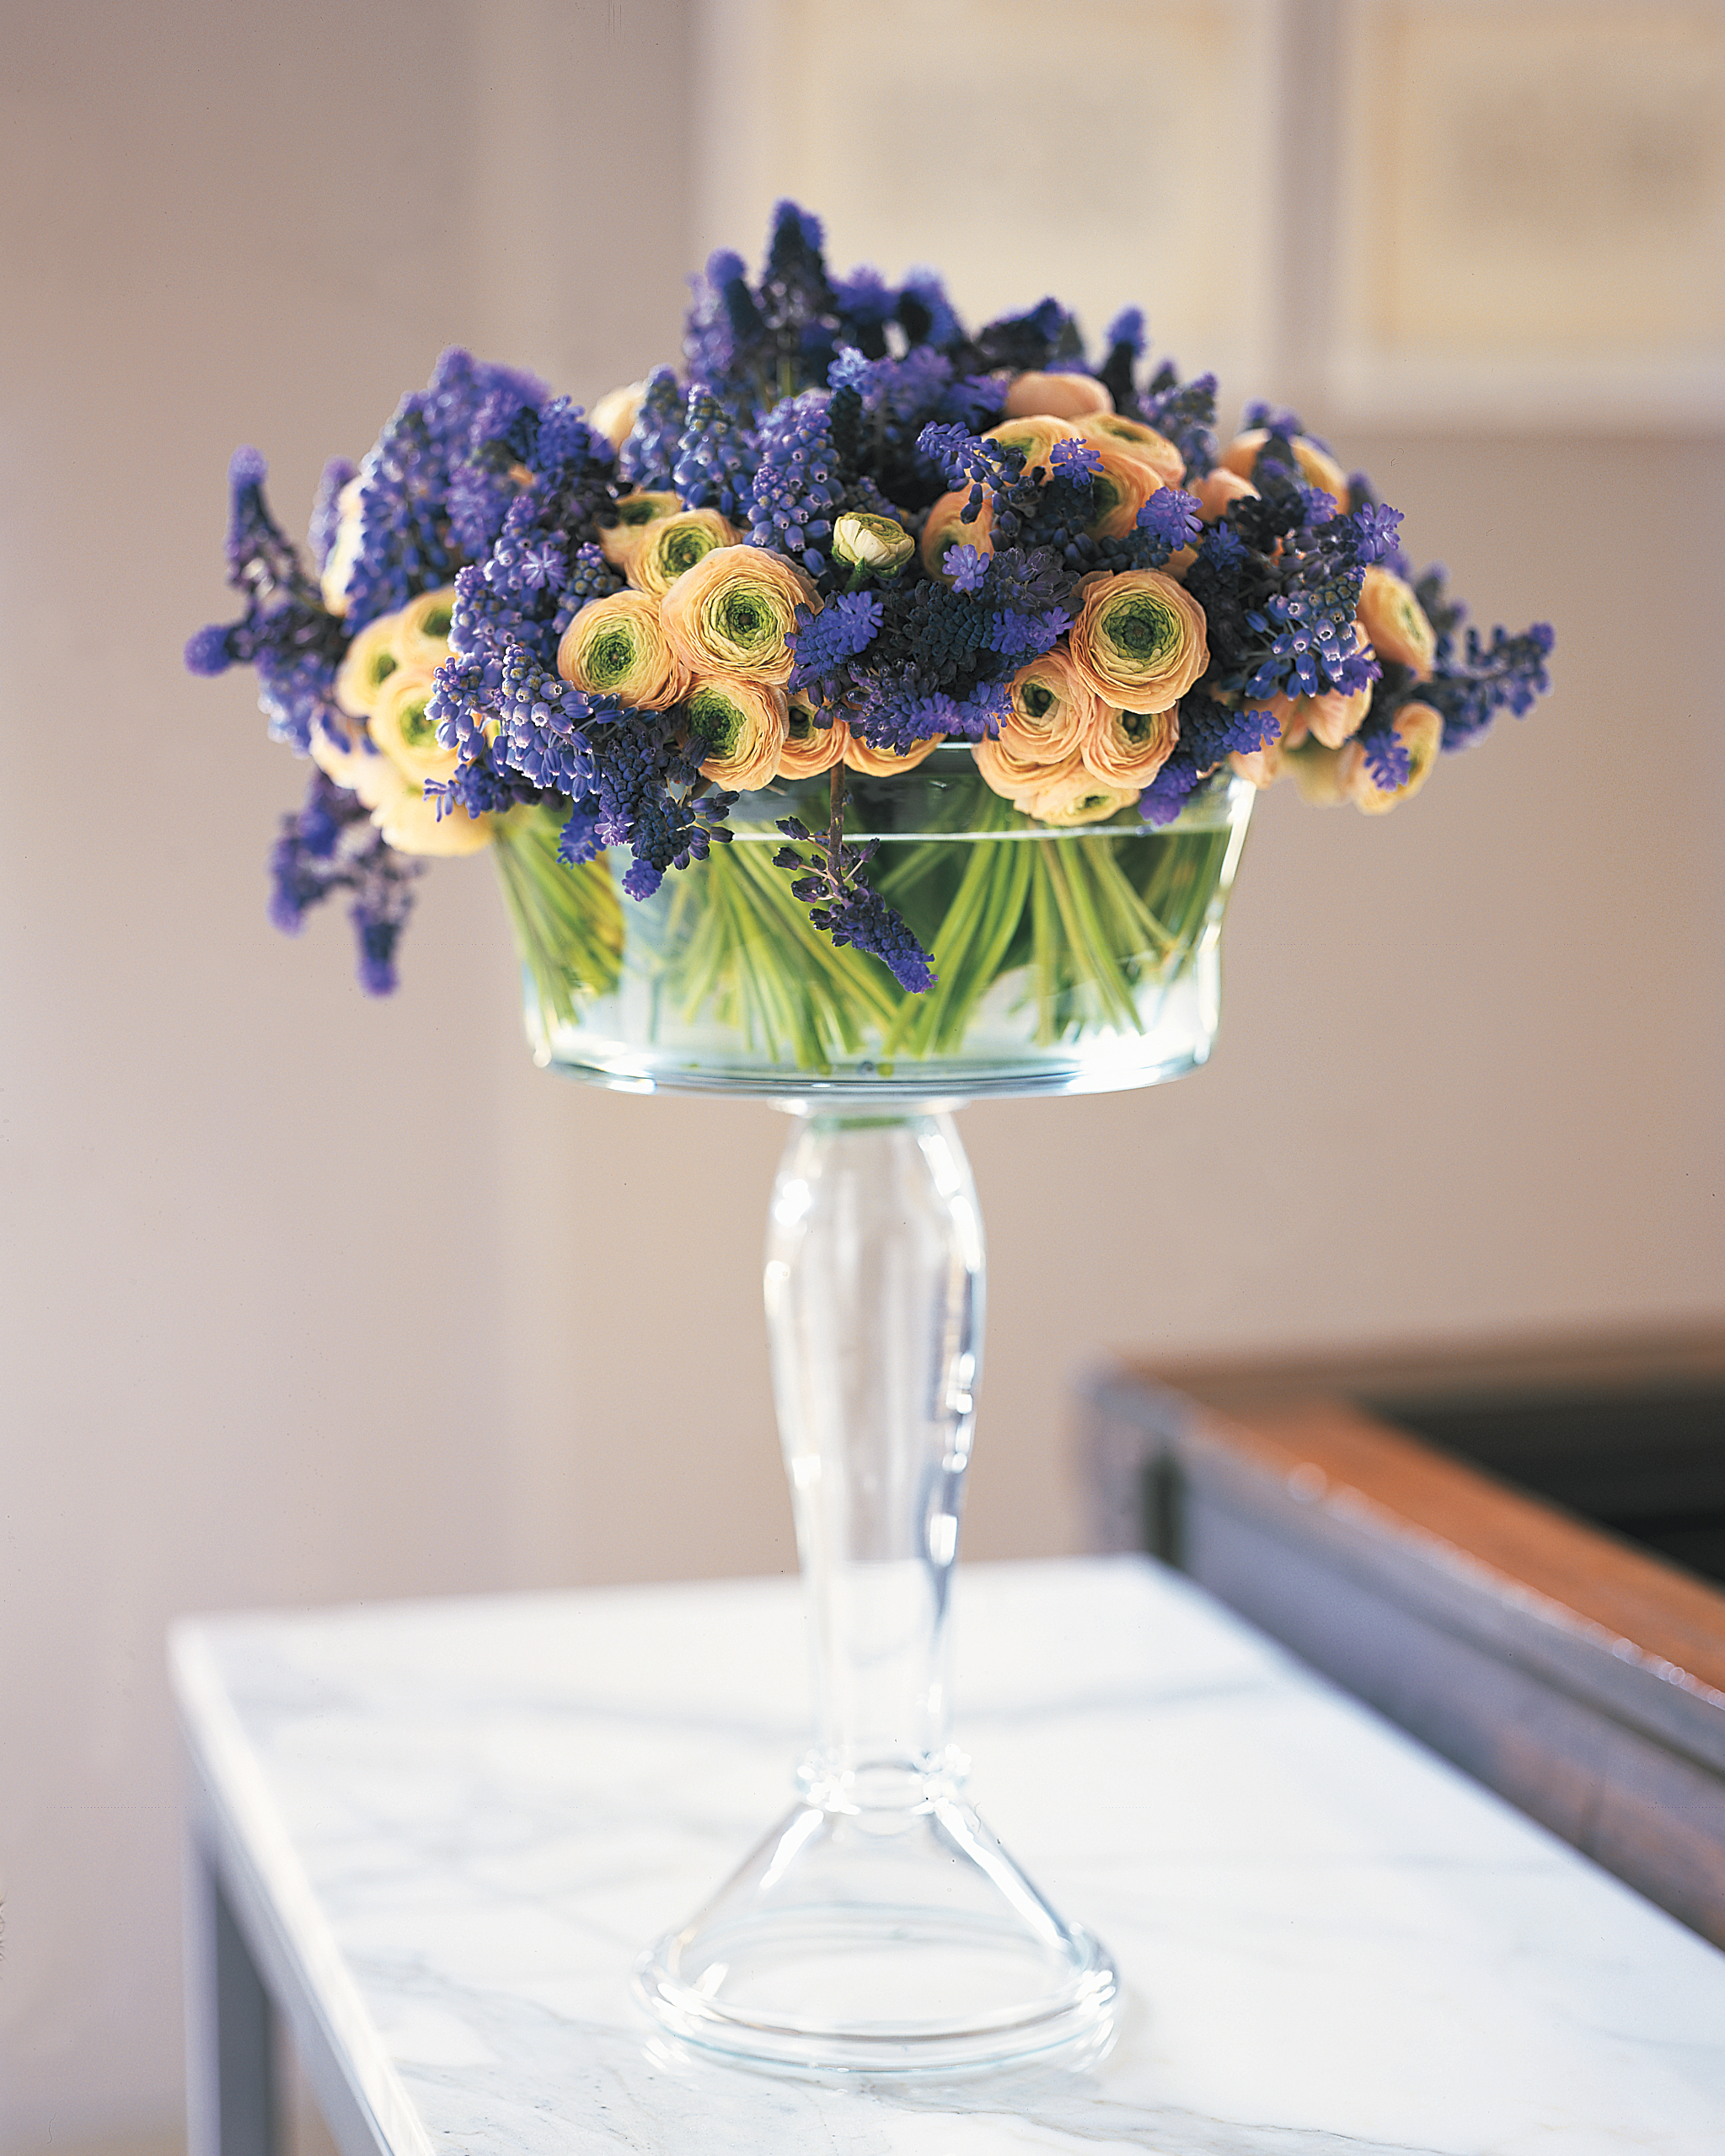 Garden Flowers in a Glass Compote